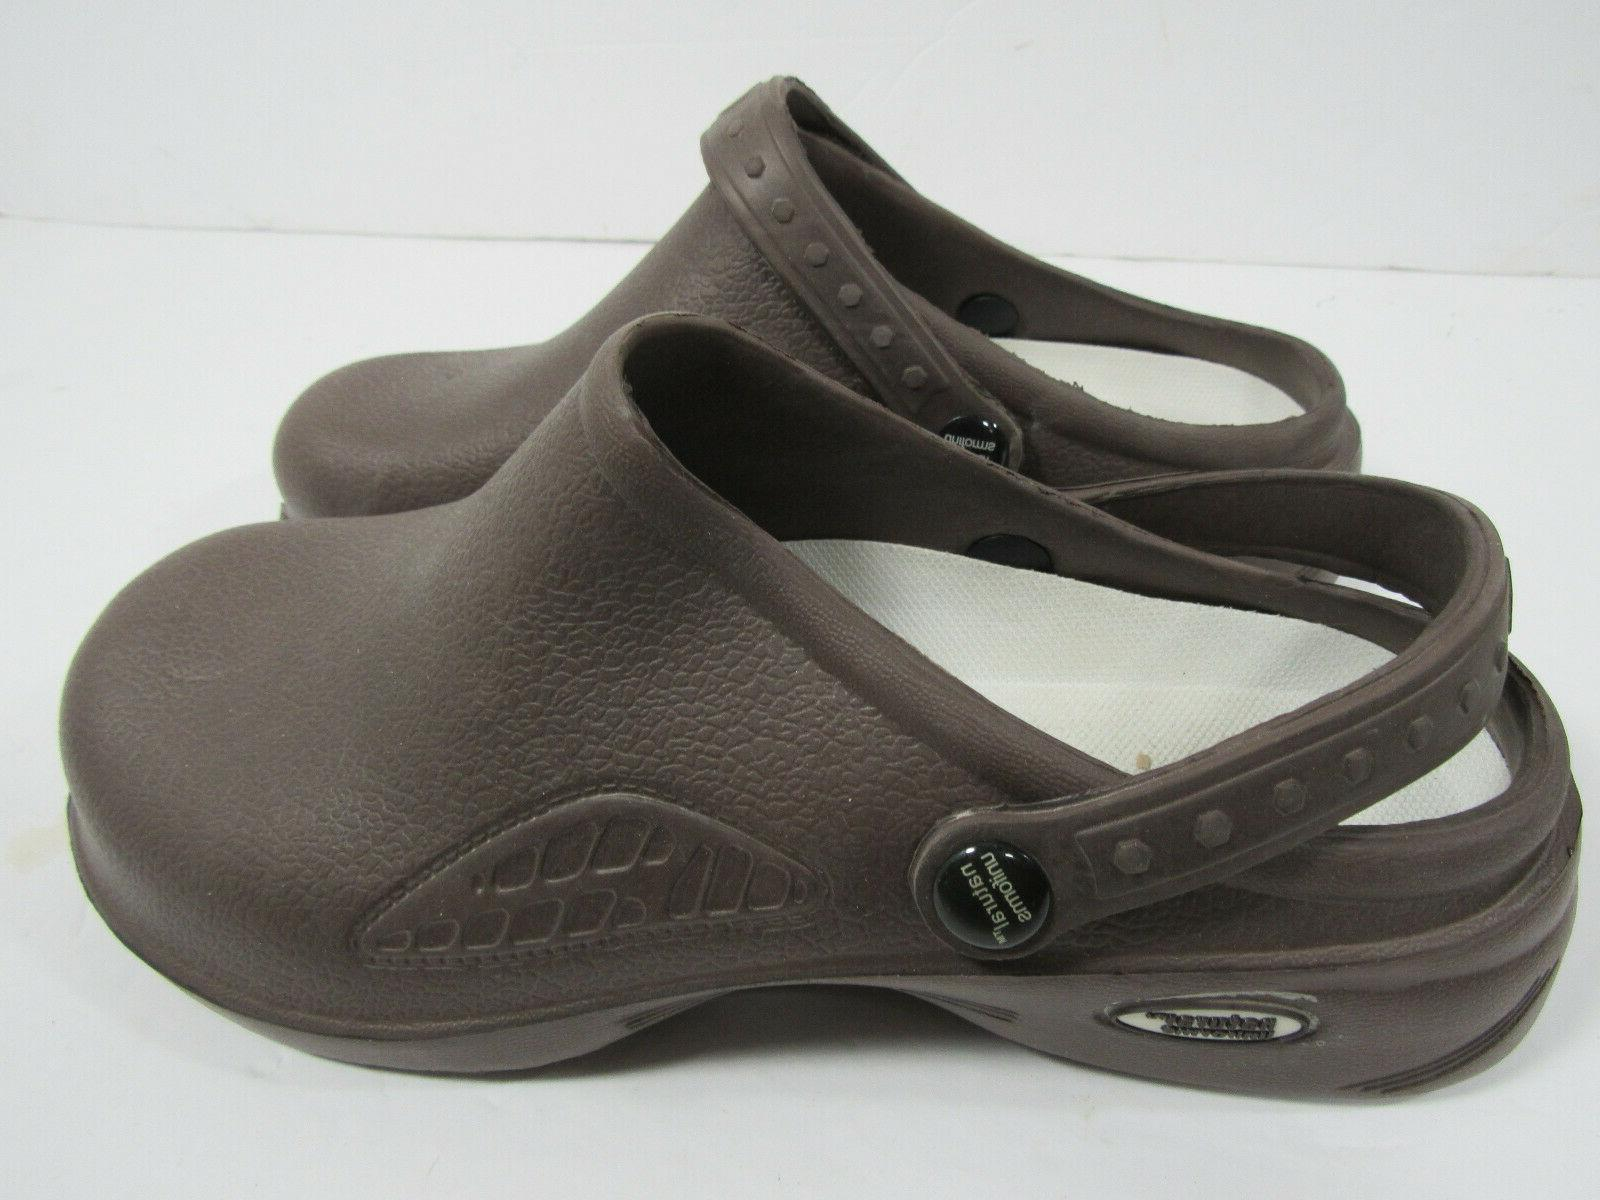 Natural Nurse Womens Lightweight Clogs Shoes Sz 6